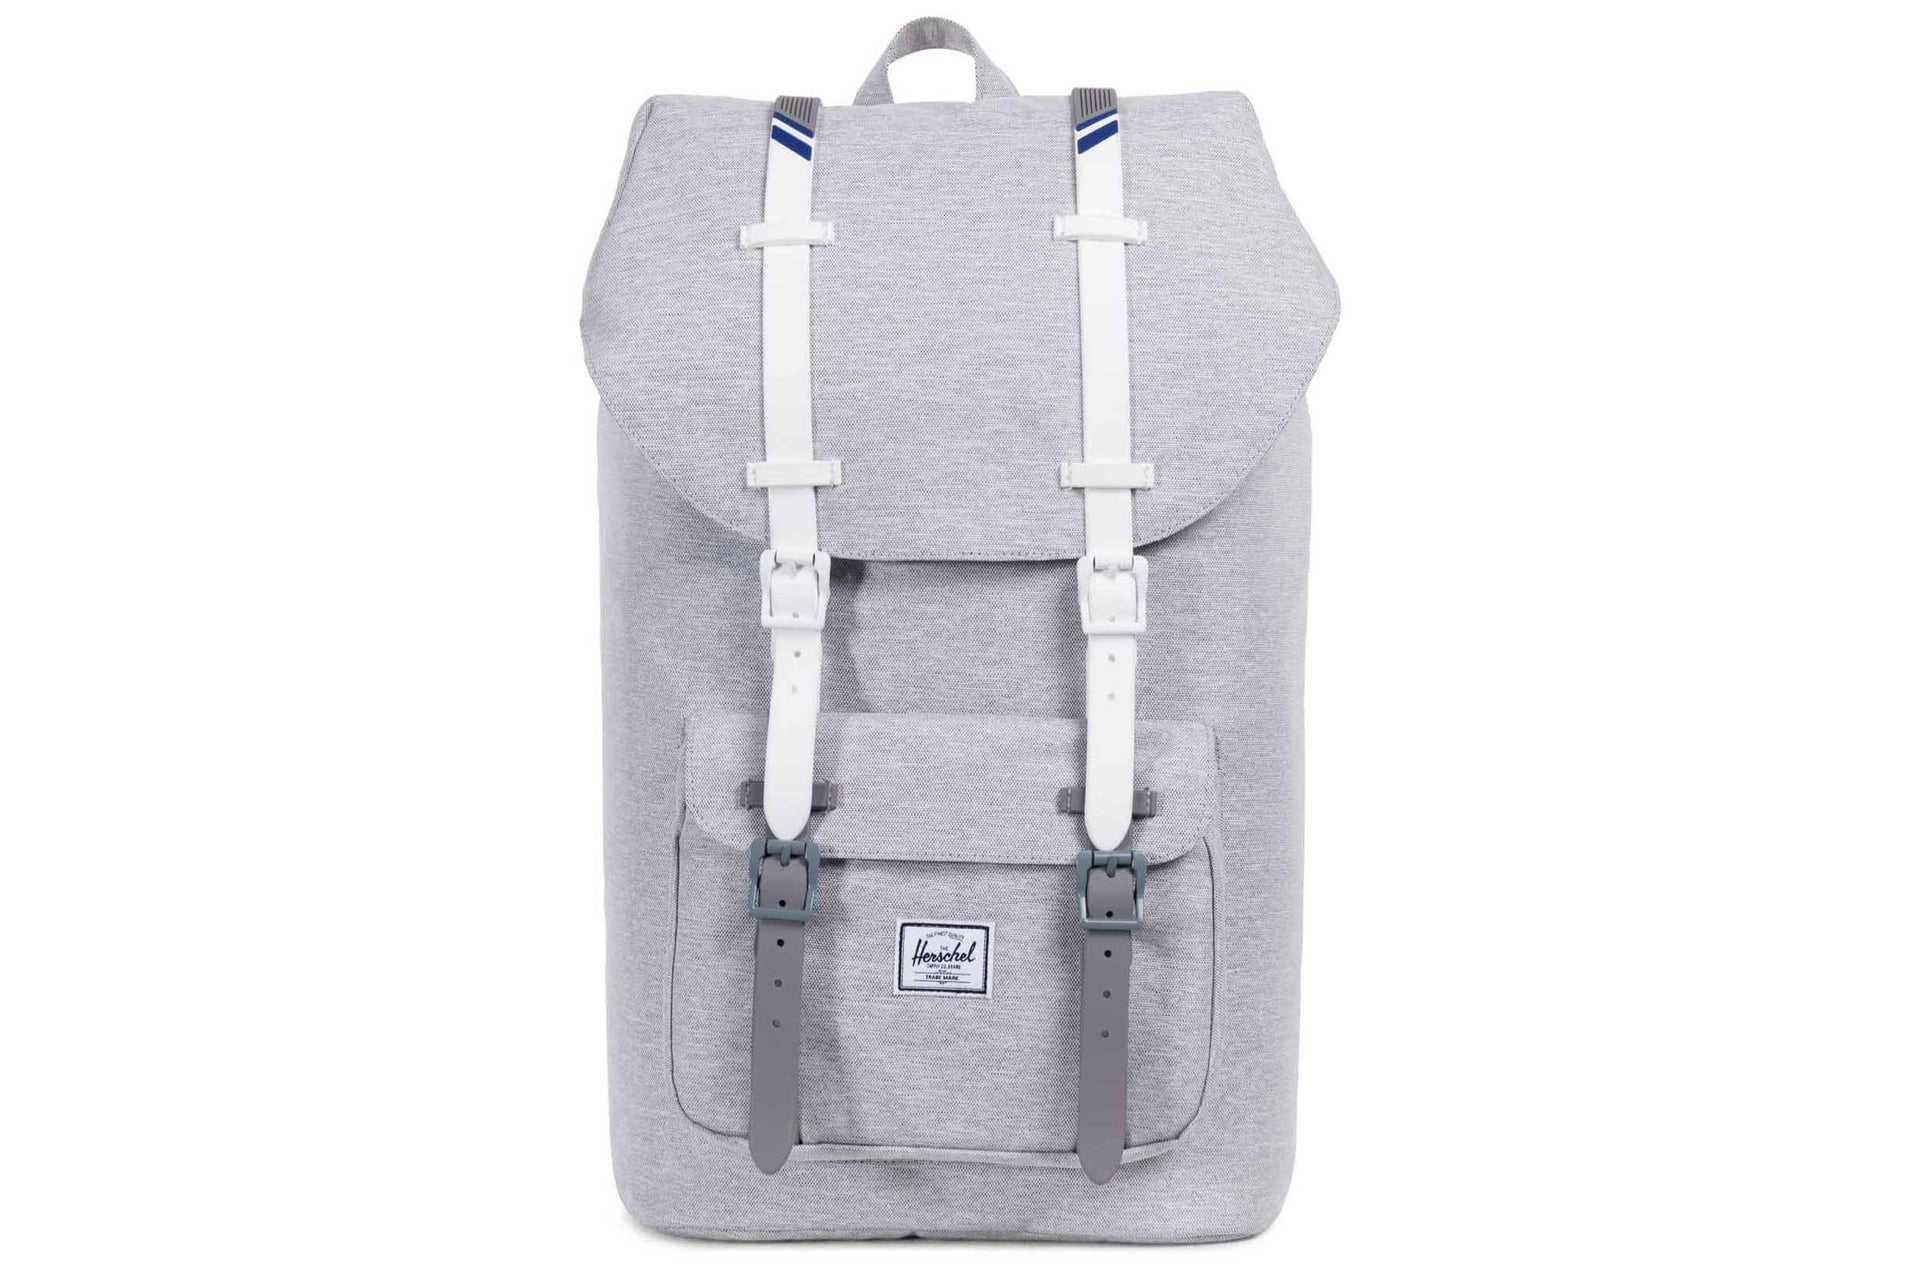 LITTLE AMERICA 600D POLY BAGS HERSCHEL LT GREY / WHT ONE SIZE